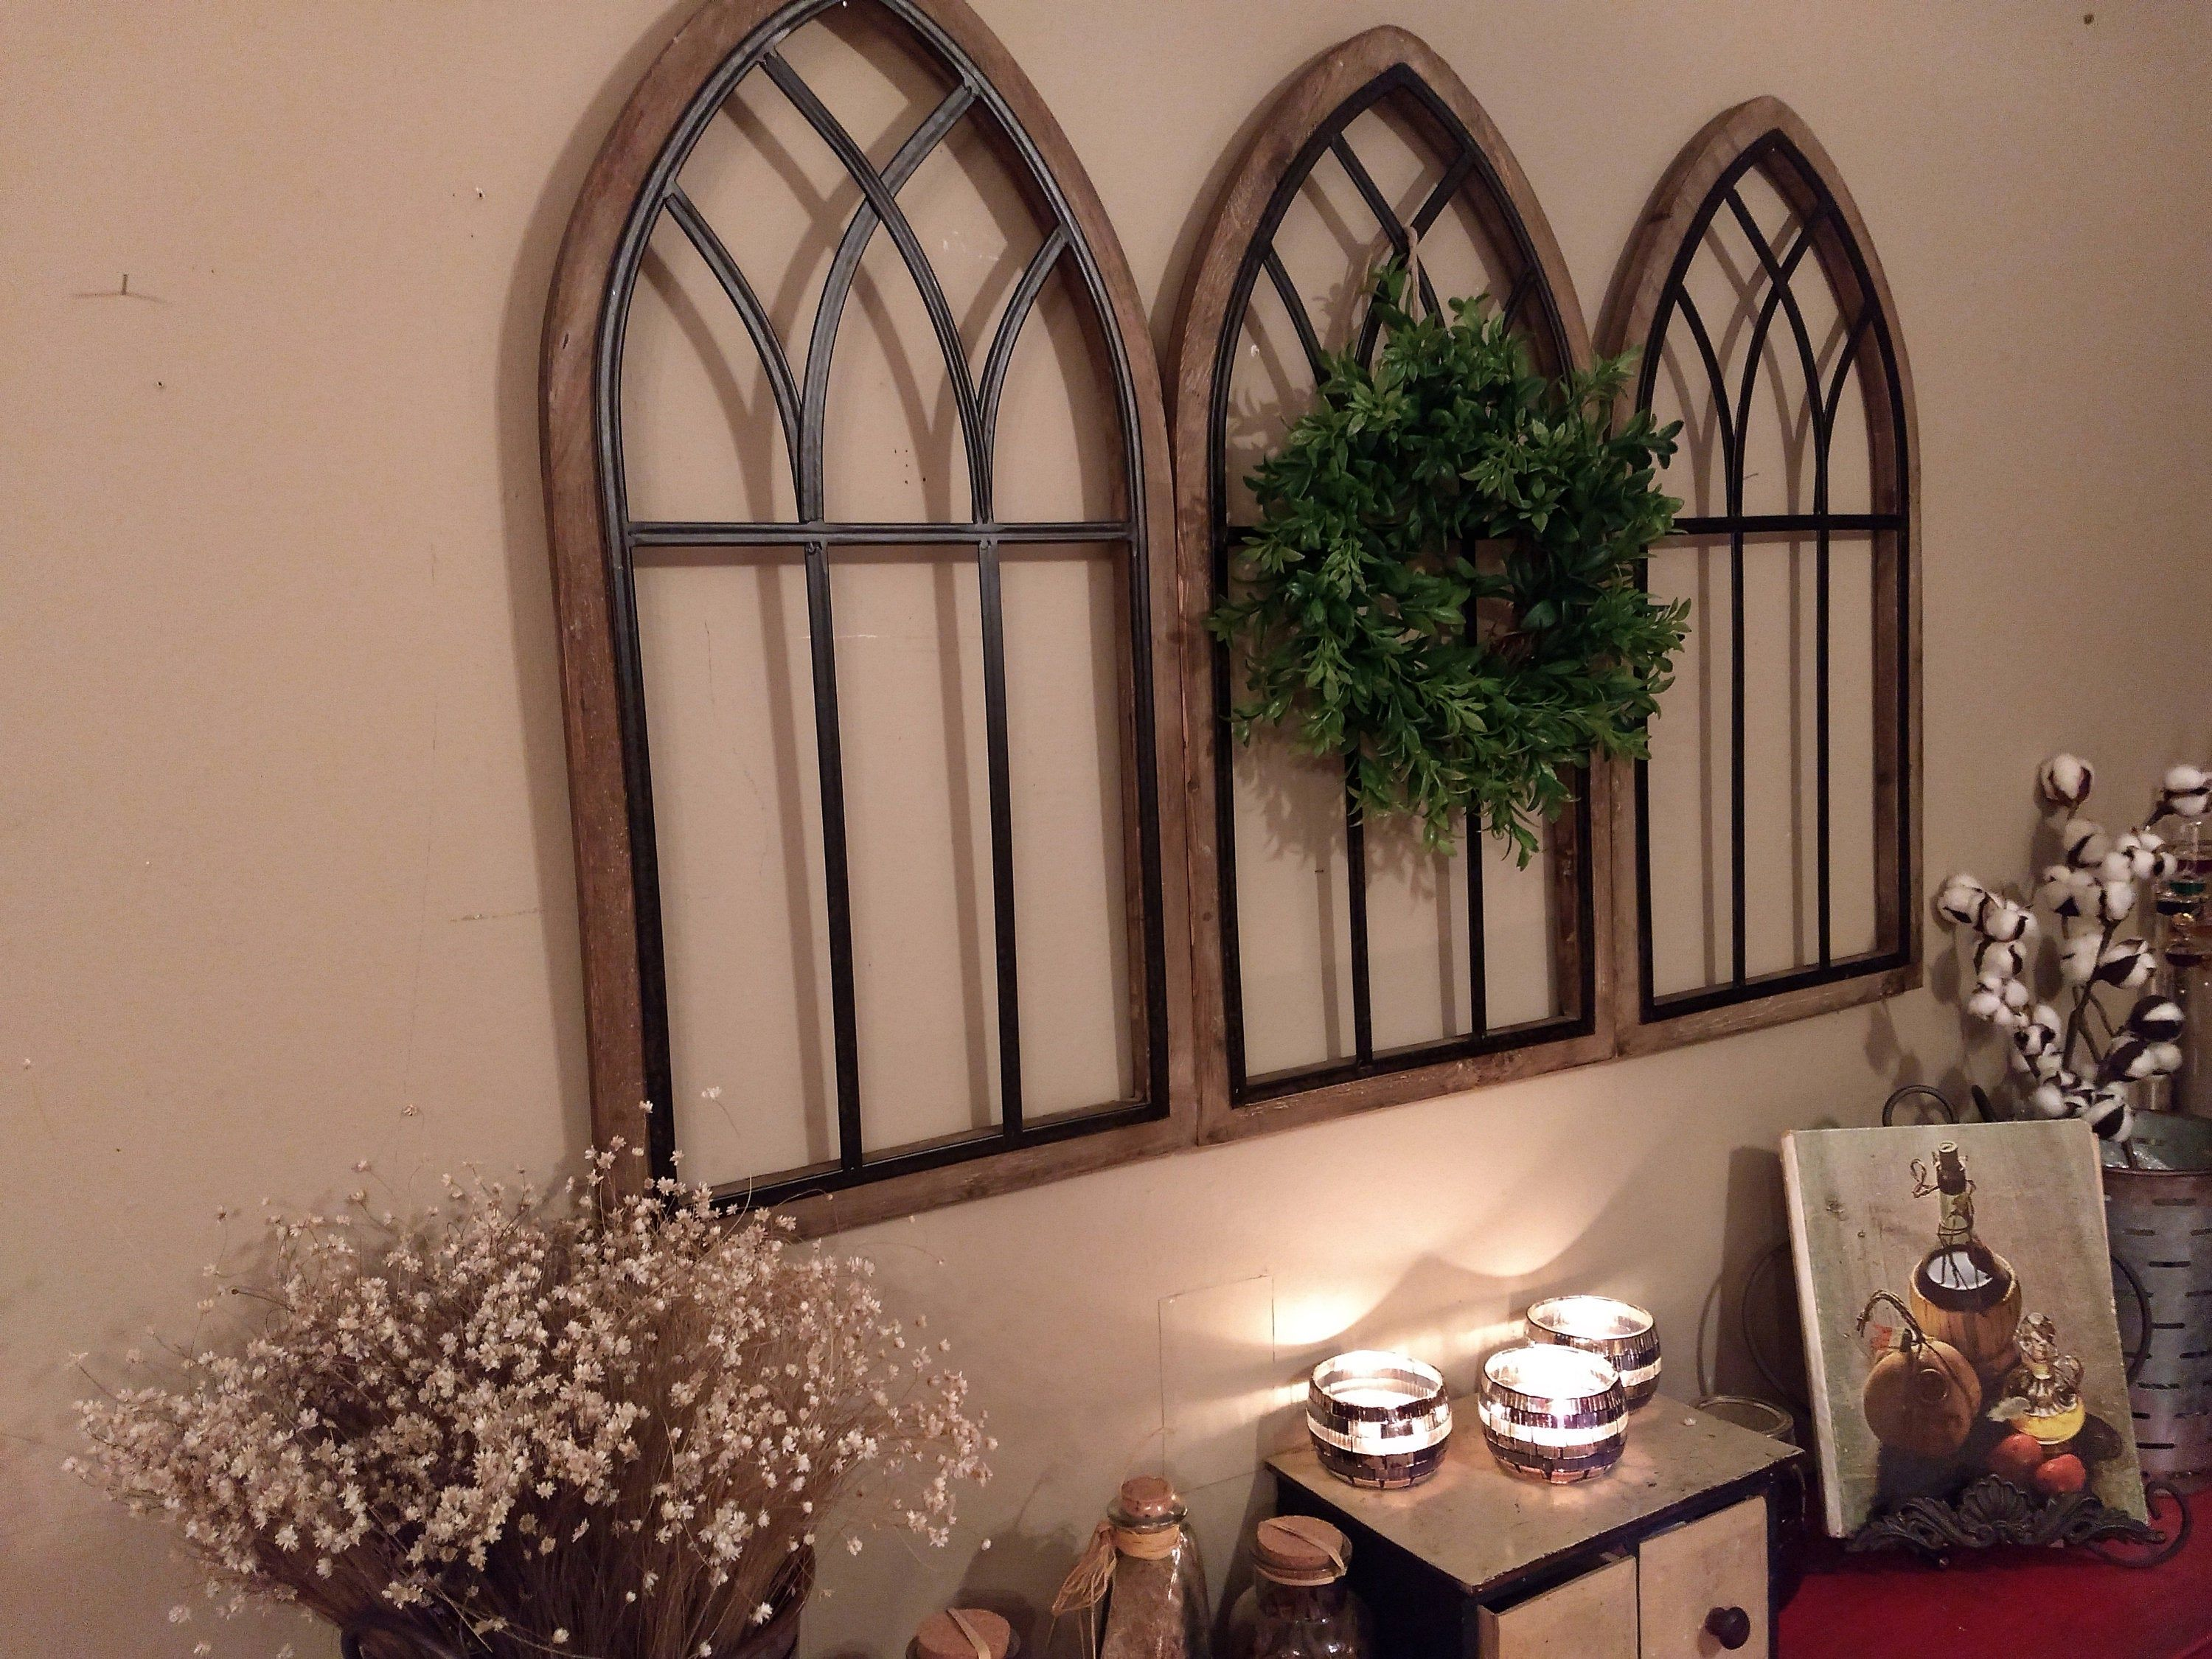 Farmhouse Wall Decor Wreath And Window Rustic Wood Metal Cathedral Arch Church Windows Kitchen Wall Decor Dinning Room Wall Decor Farmhouse Wall Decor Arched Wall Decor Dinning Room Wall Decor